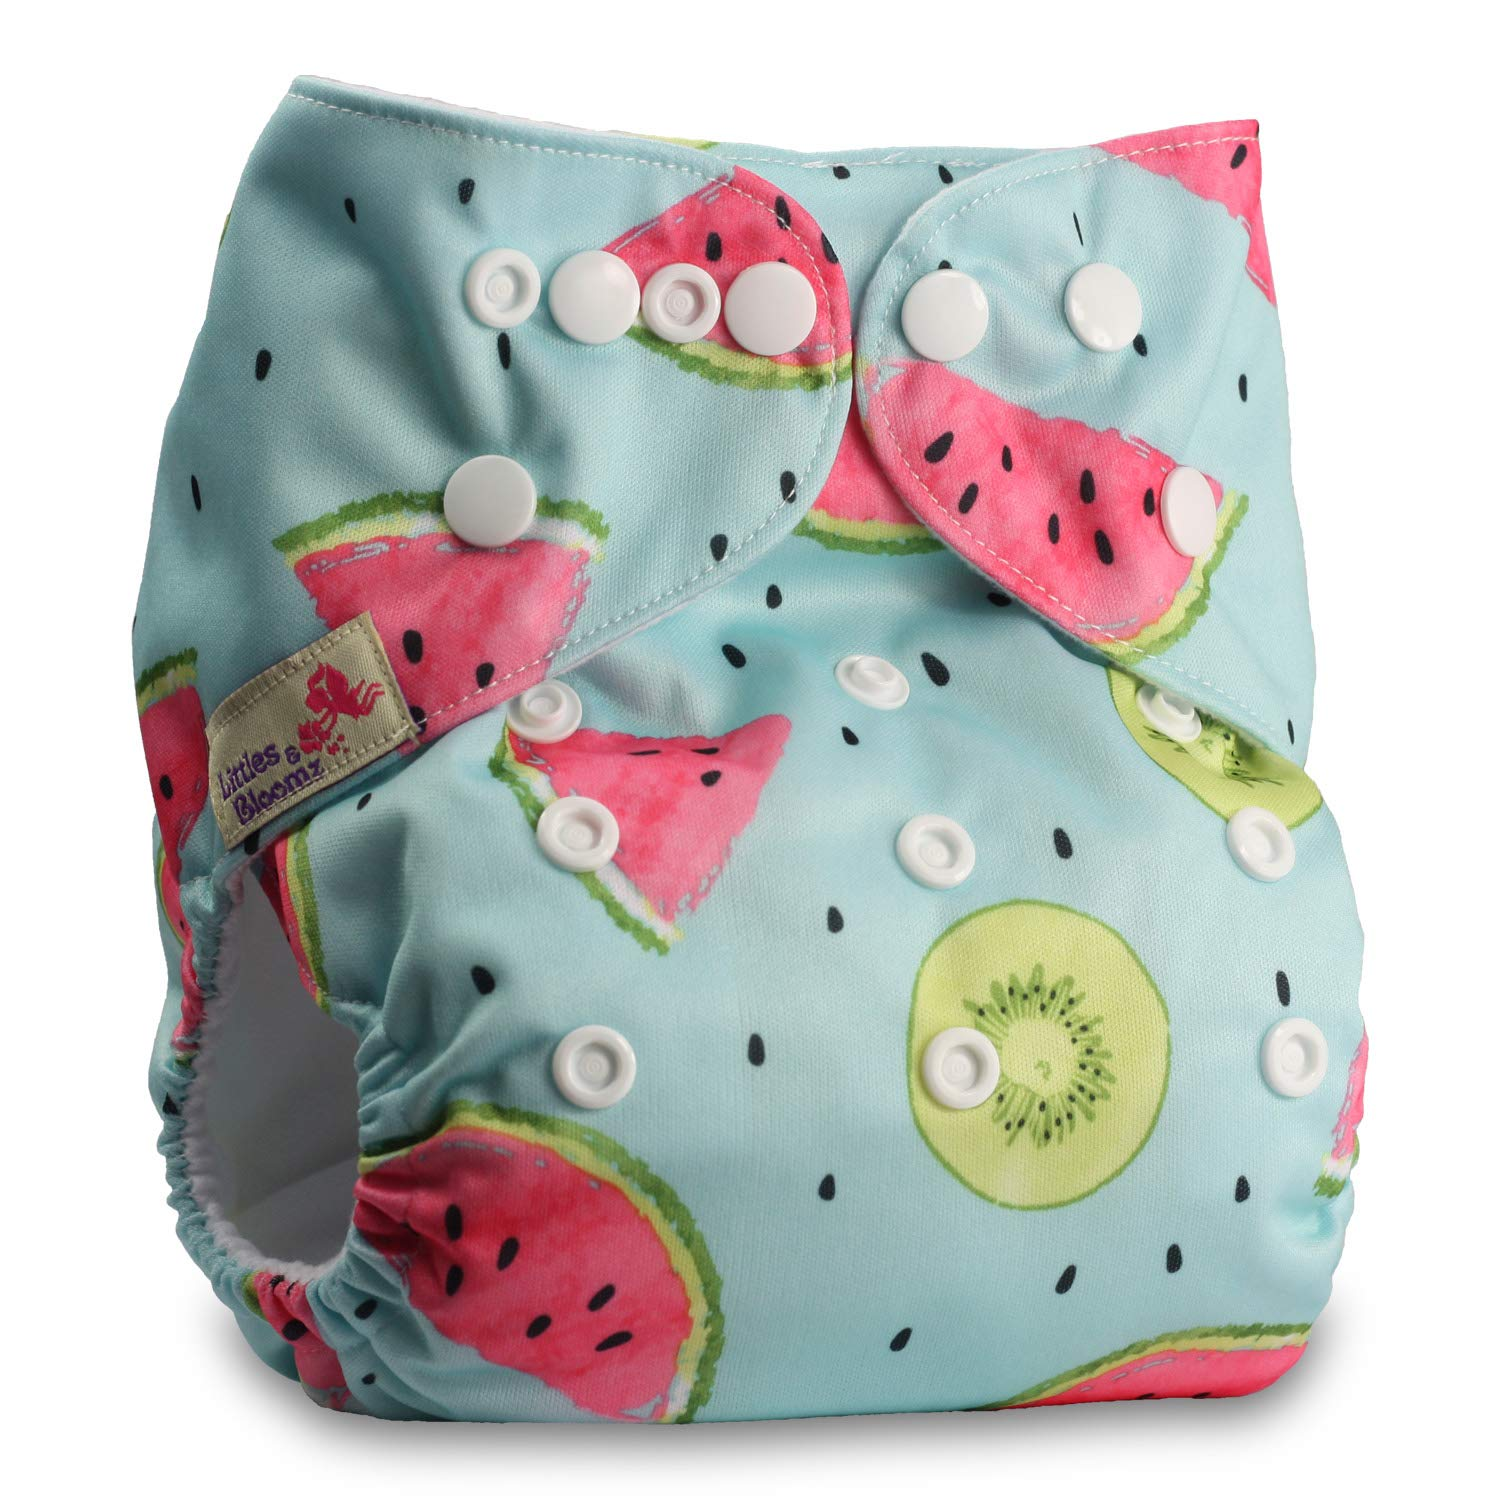 Baby Cloth Washable Reusable Nappy Pocket Diaper Bamboo with 2 Bamboo Charcoal Inserts Fastener: Popper Littles /& Bloomz Pattern 11